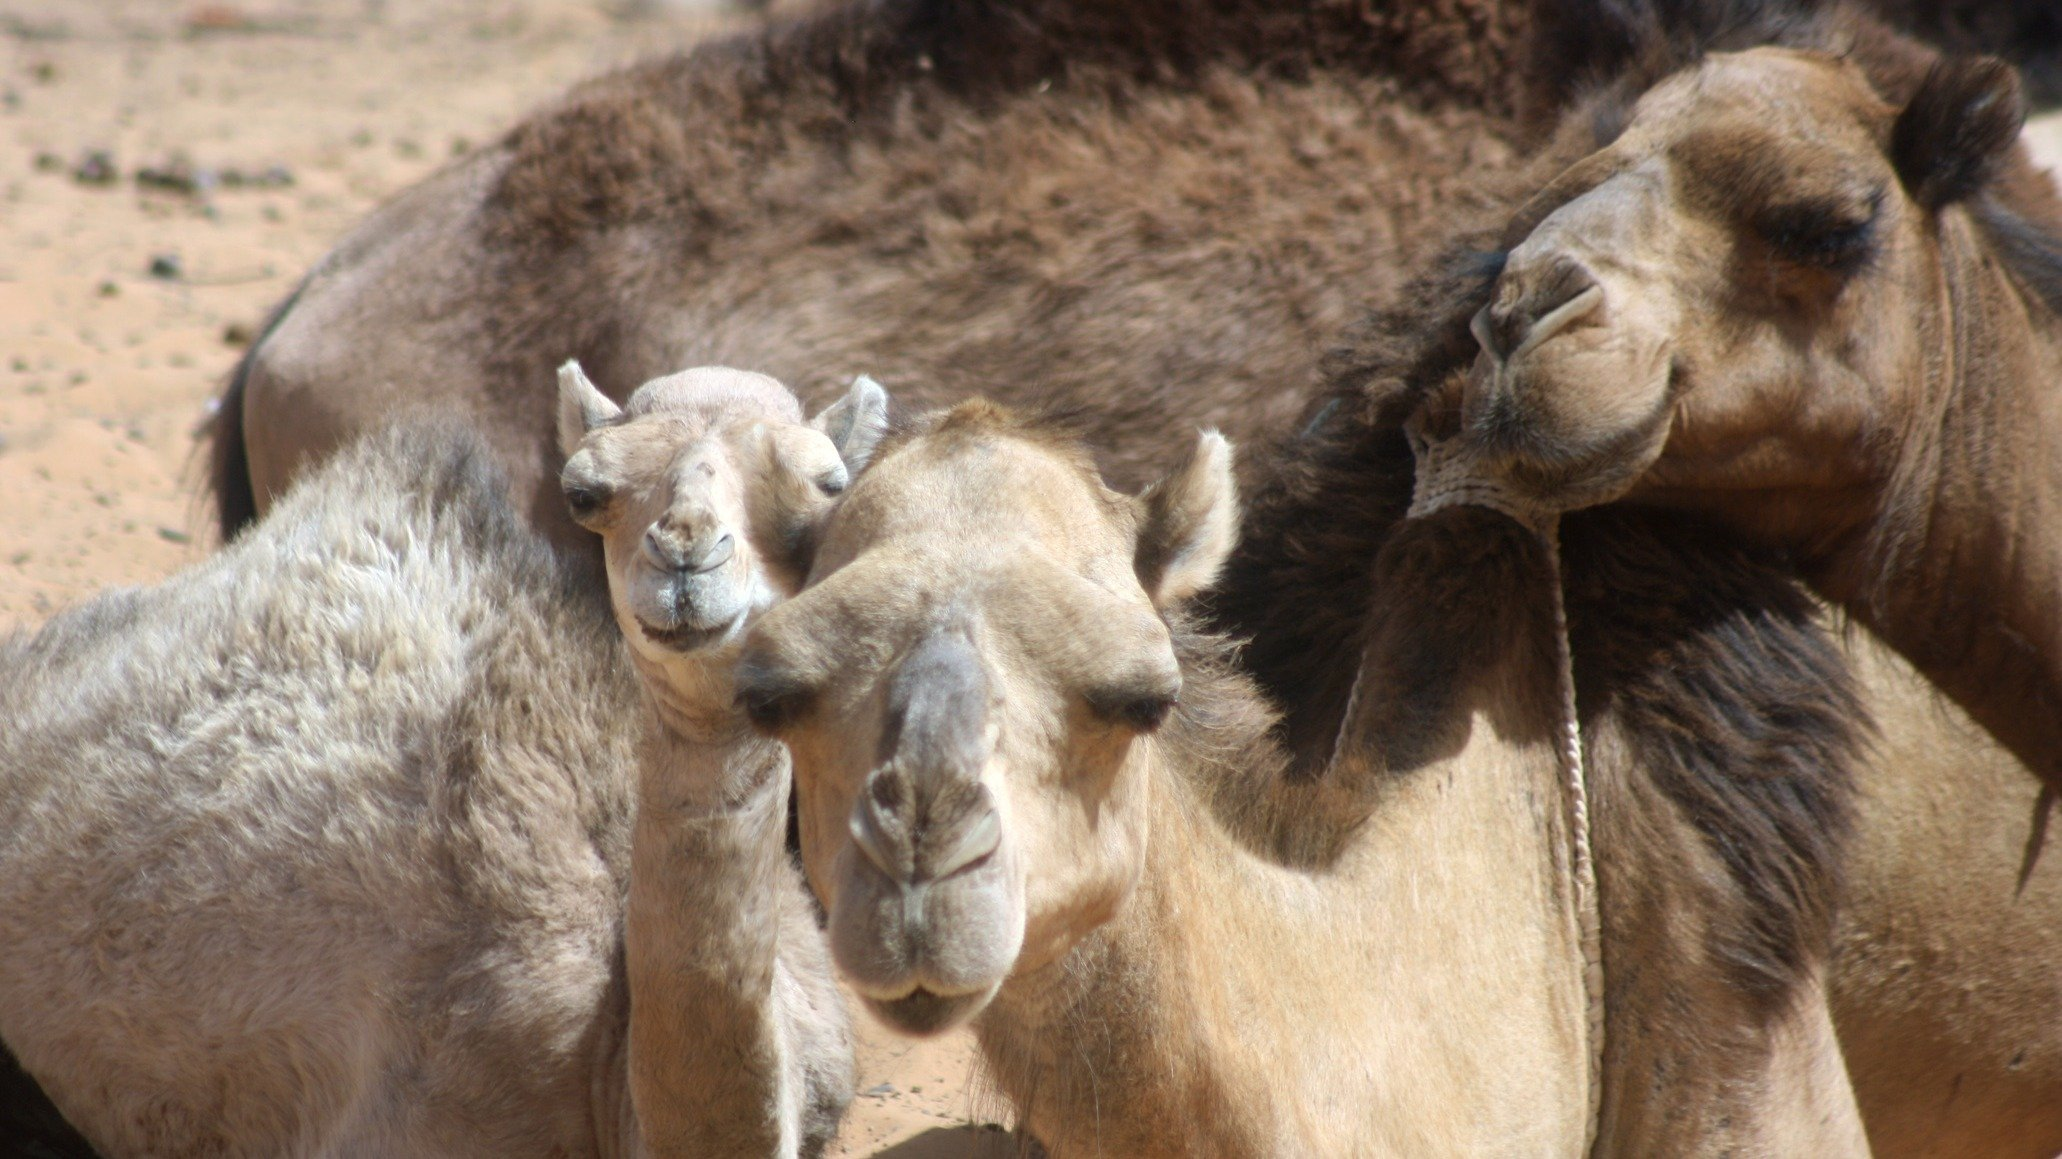 Mauritania is home to Africa first camel milk dairy